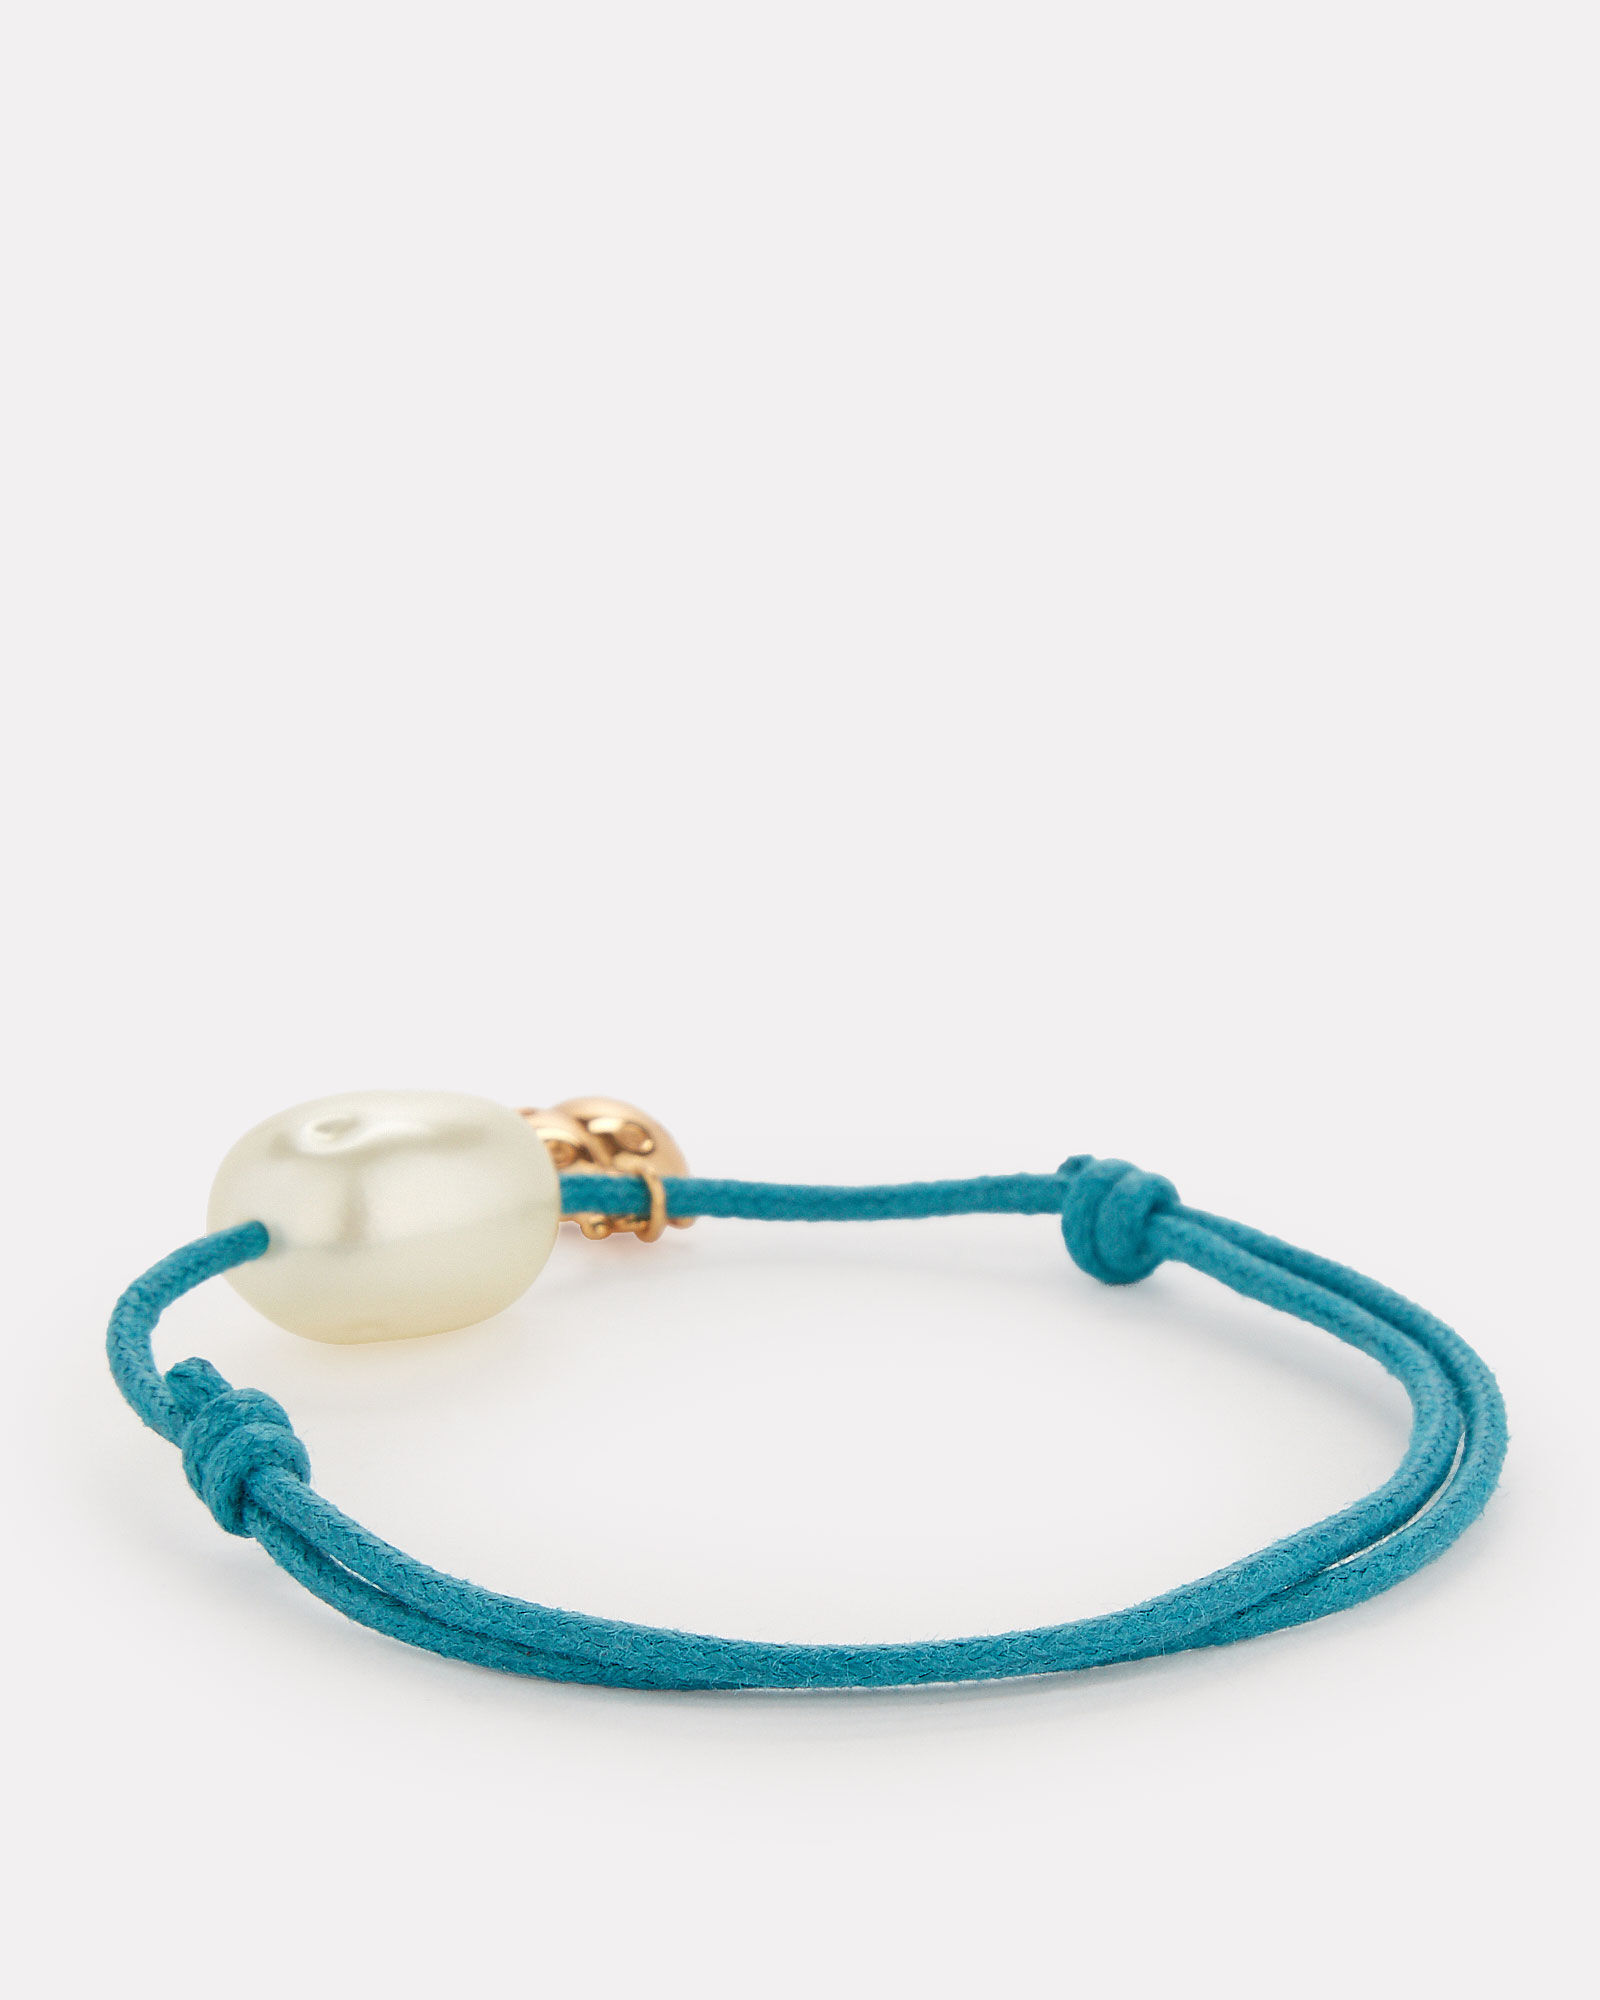 Grigri Lady Bug Wrap Bracelet, TEAL, hi-res